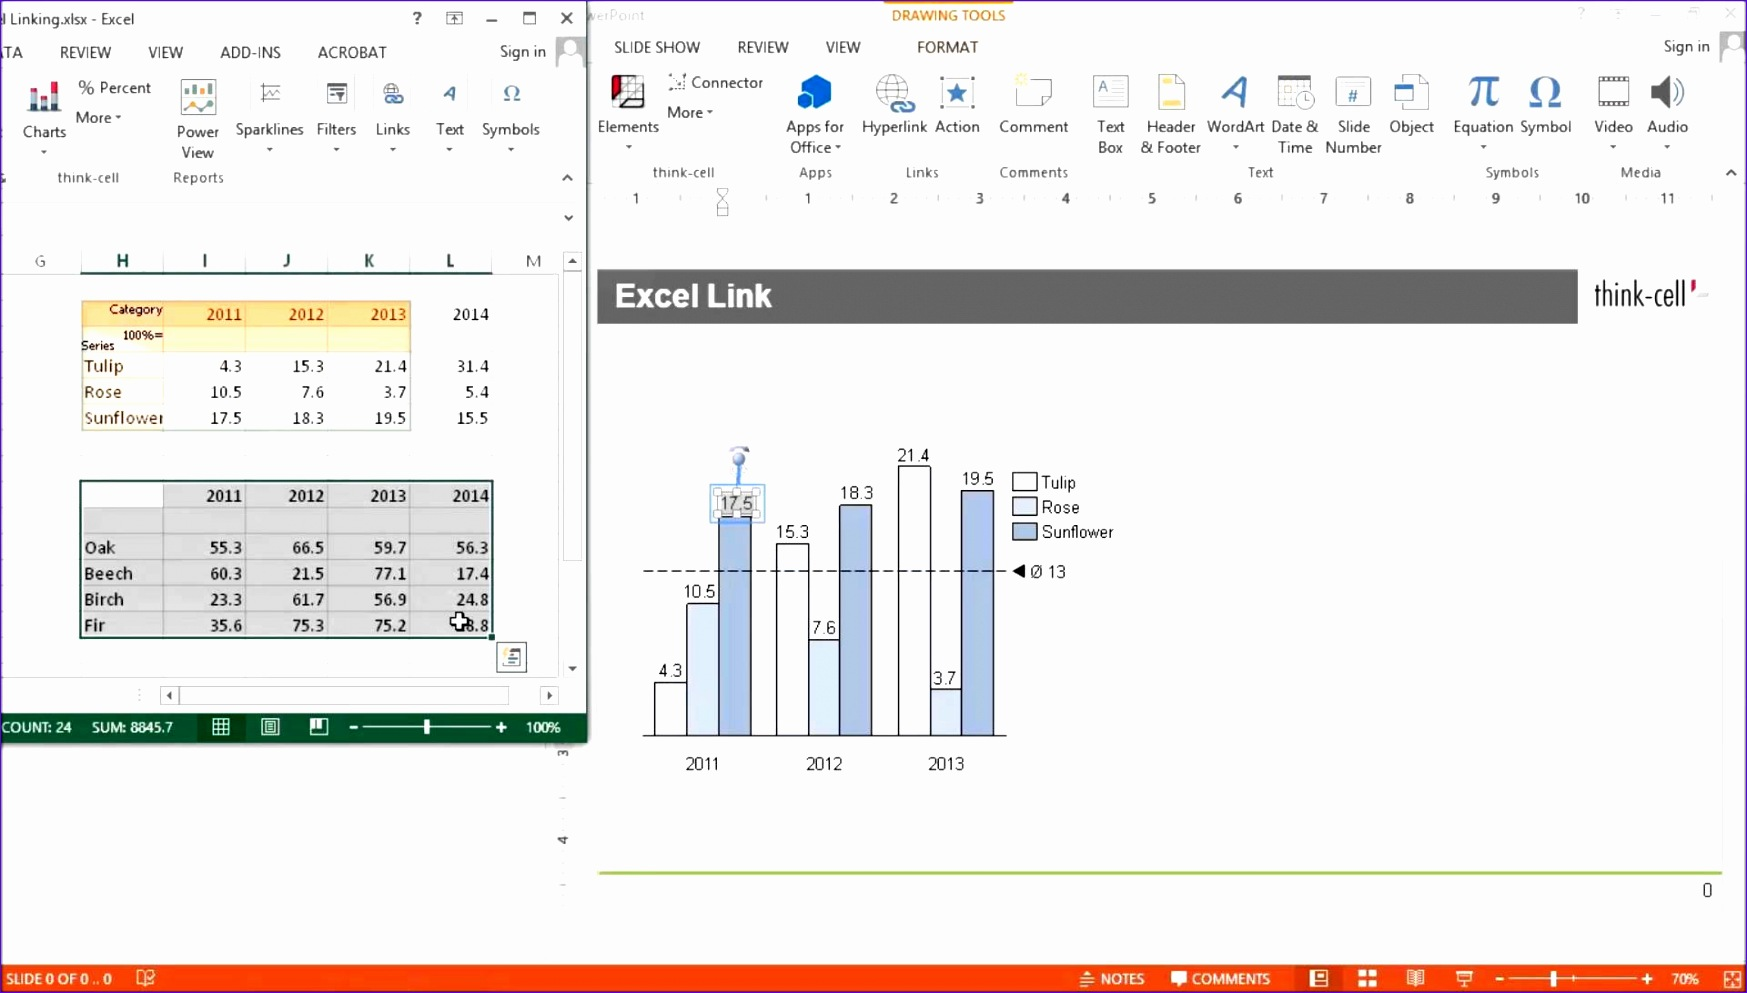 Excel Waterfall Chart Template with Negative Values H0kwx Beautiful Features Charting Excel Data Links and Slide Layout Think Cell